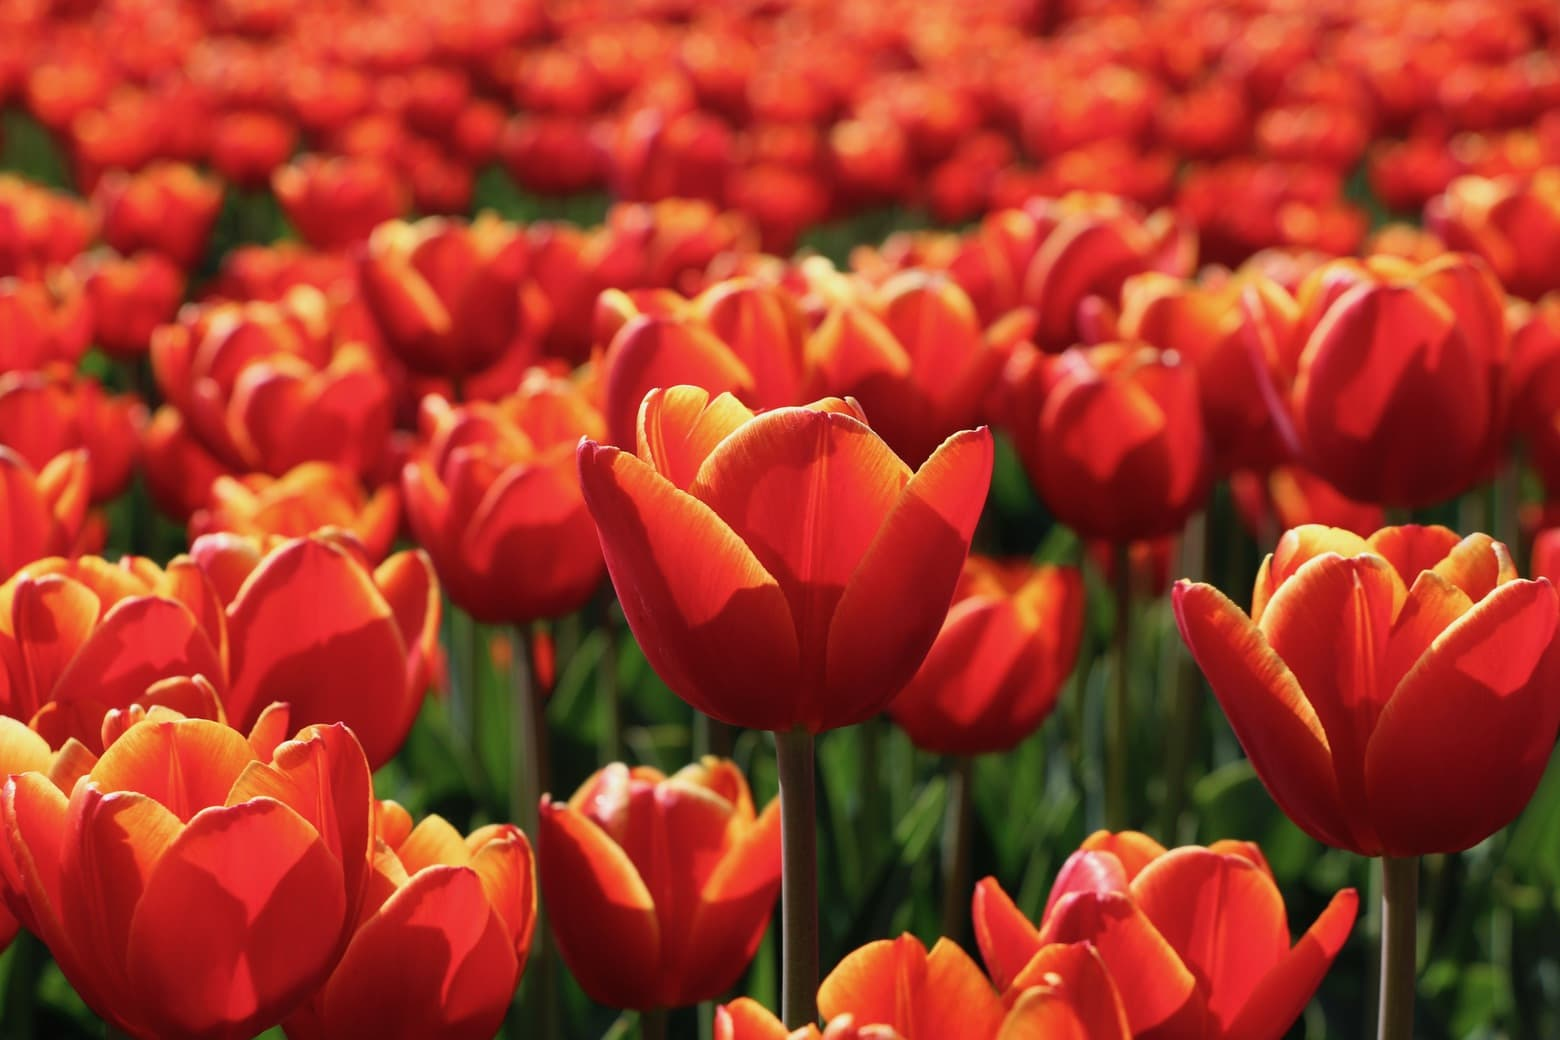 Image of red tulips